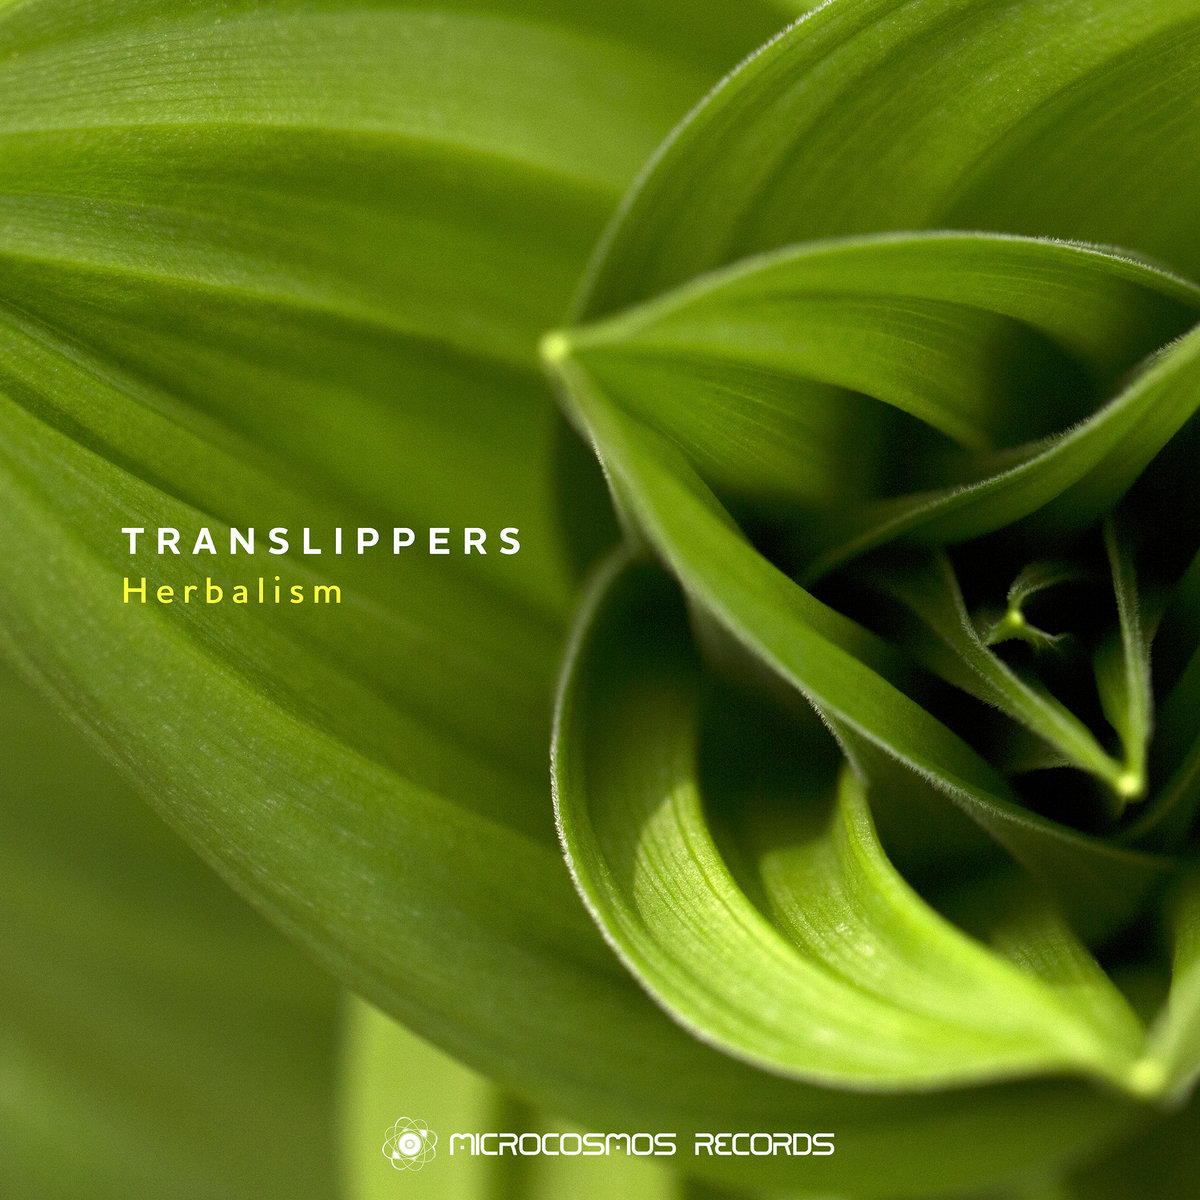 Translippers - Speaking Moss @ 'Herbalism' album (ambient, chill-out)